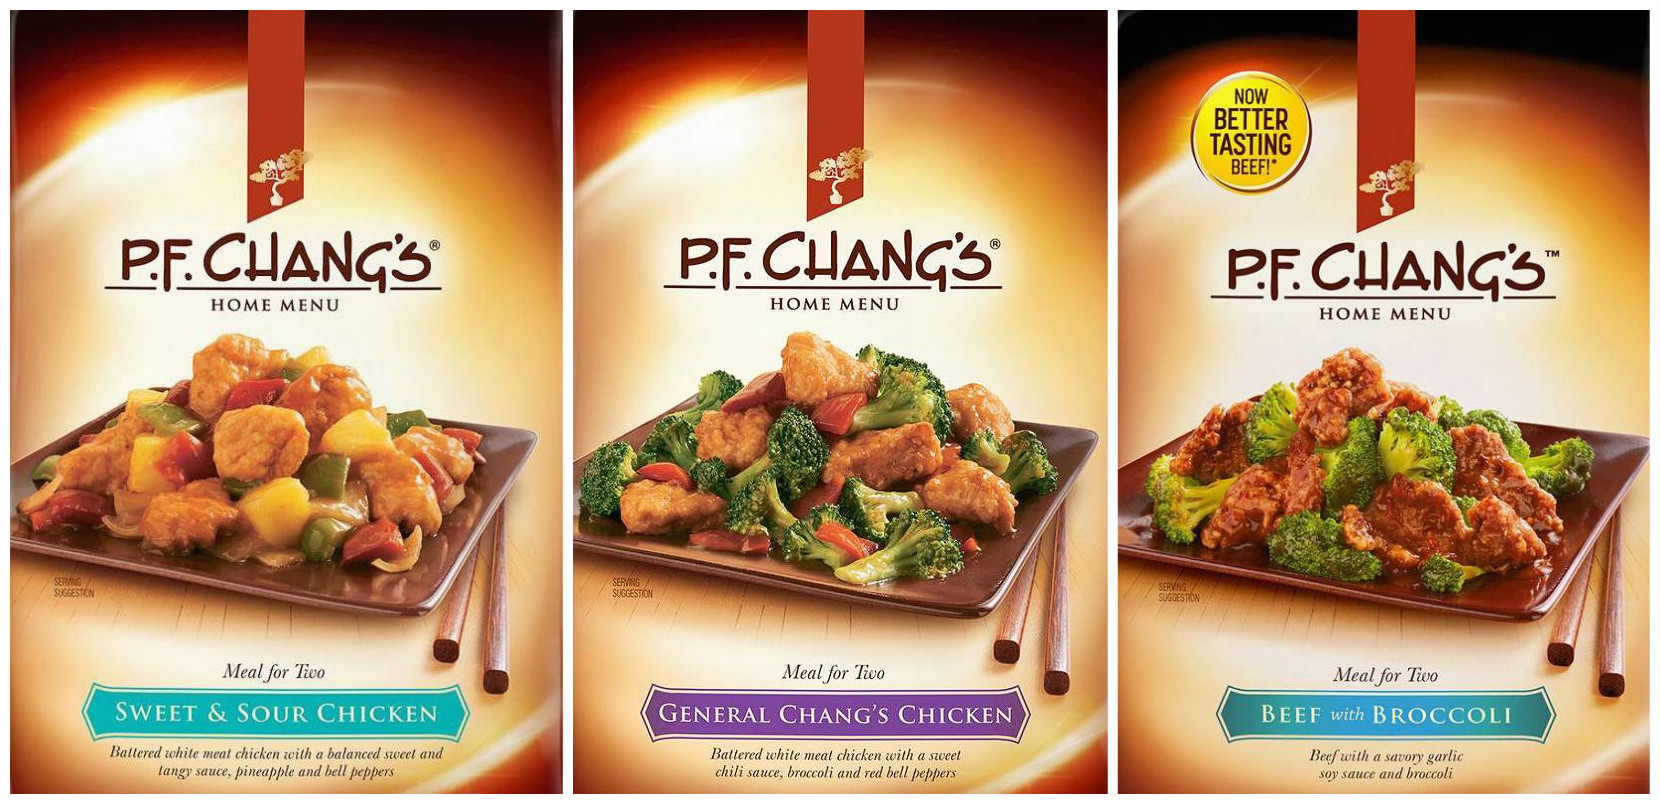 ConAgra Expands P.F. Chang's Recall To Include 6 Additional Frozen Meals